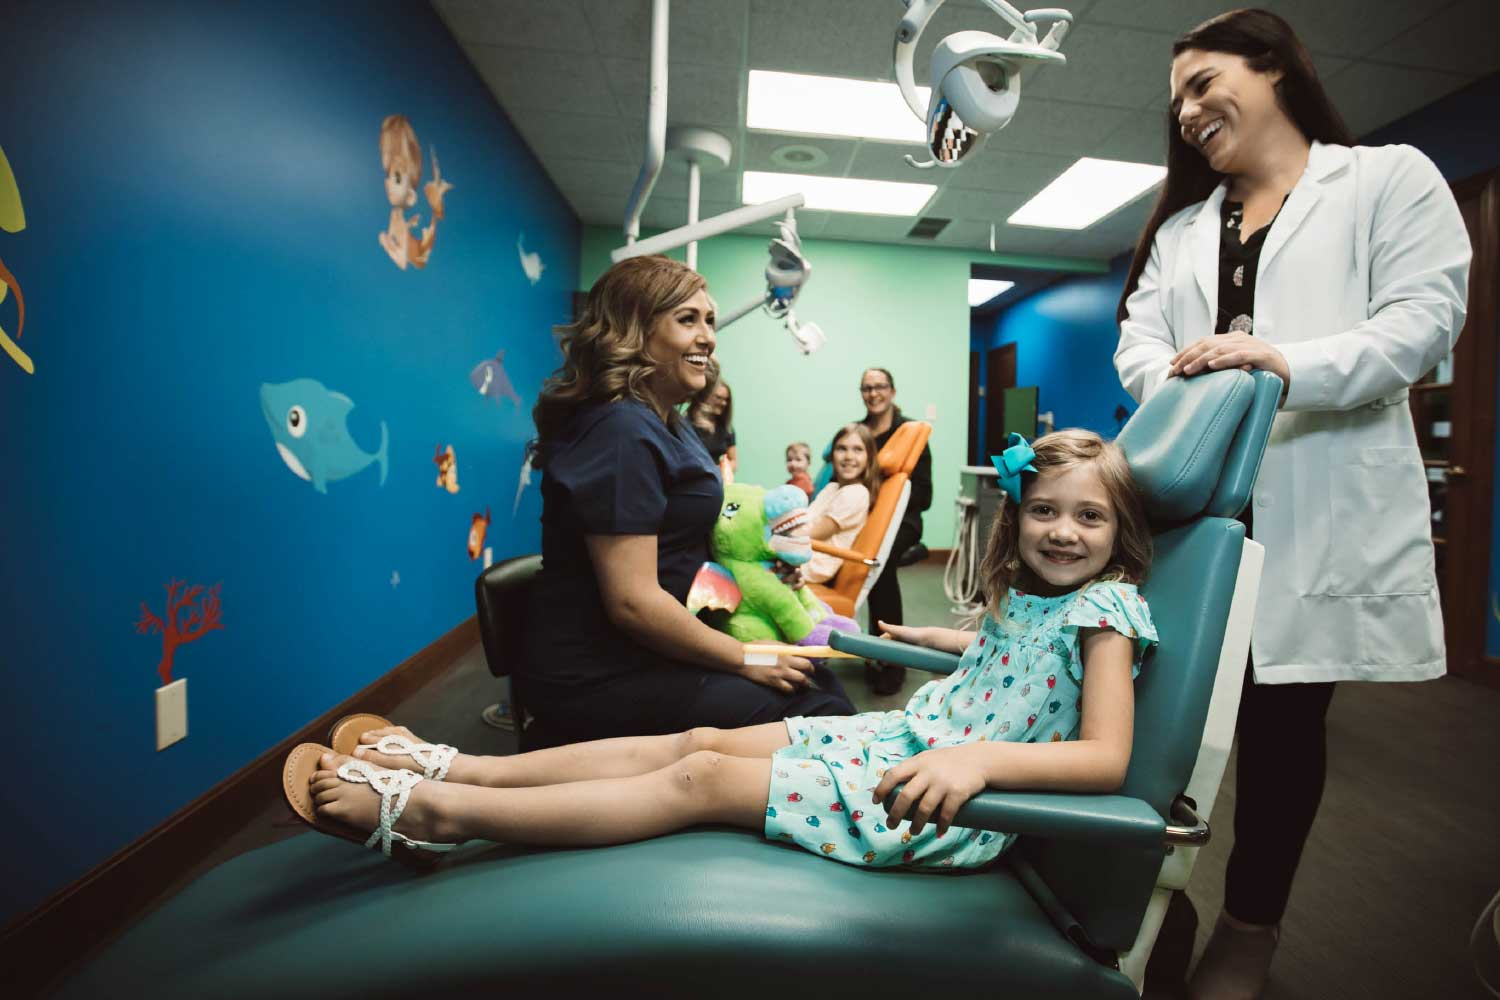 Photo of a smiling patient sitting in a dental char next to Dr. Myers and a team member